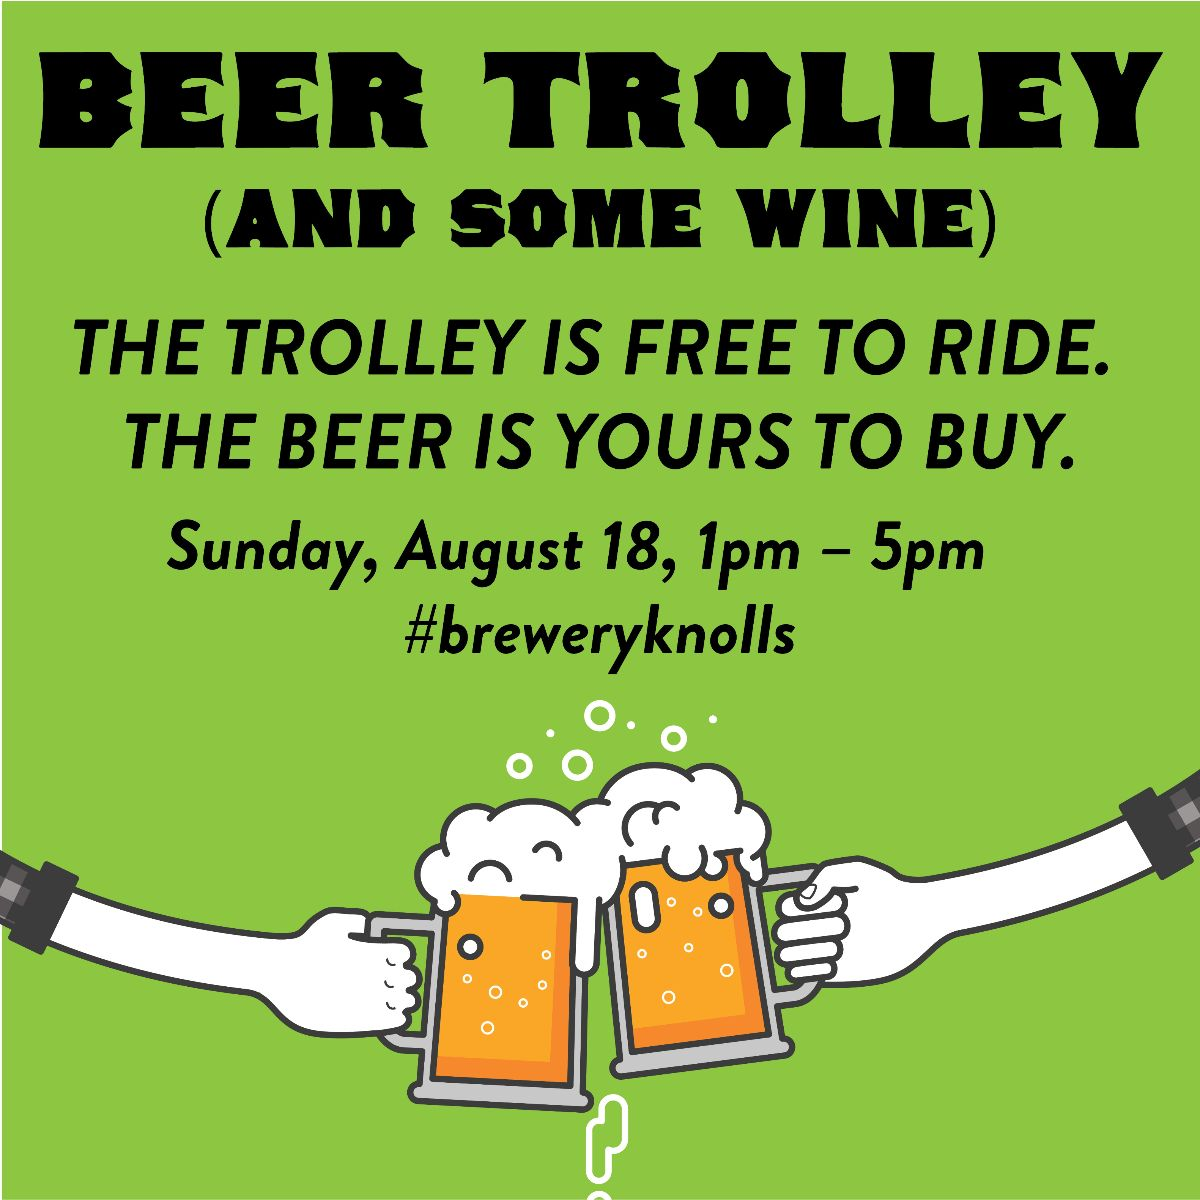 Beer Trolley Day